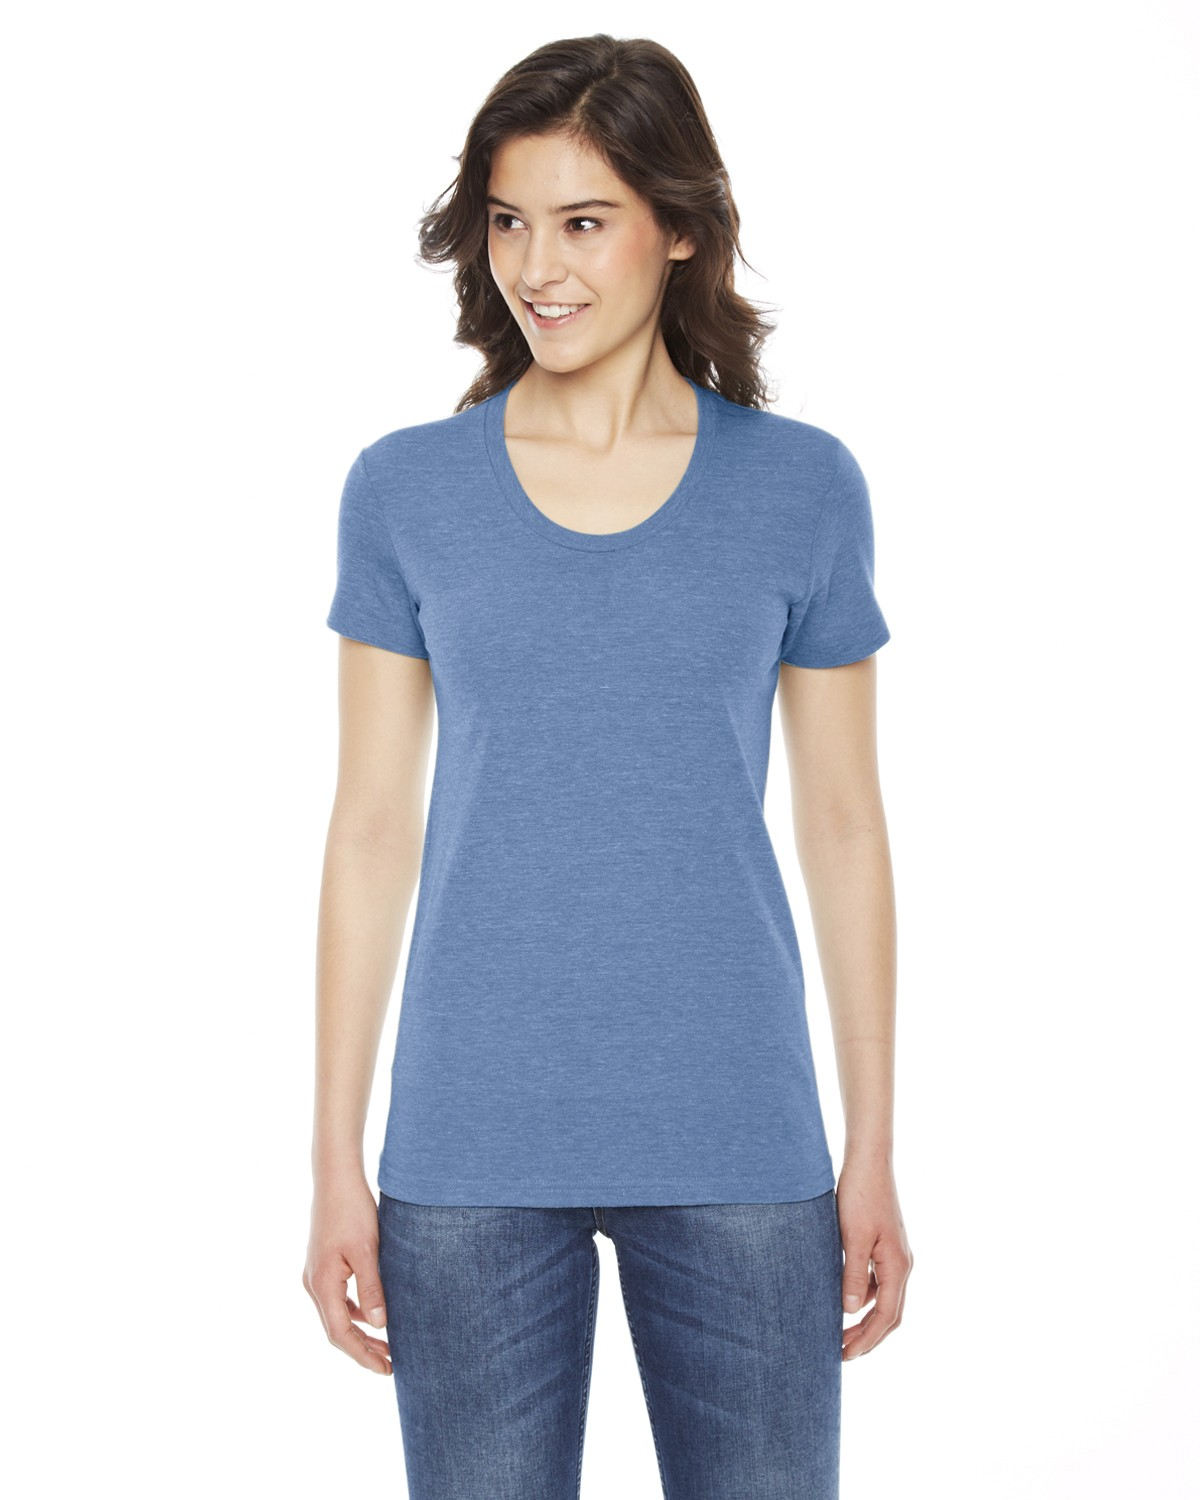 TR301W American Apparel ATHLETIC BLUE